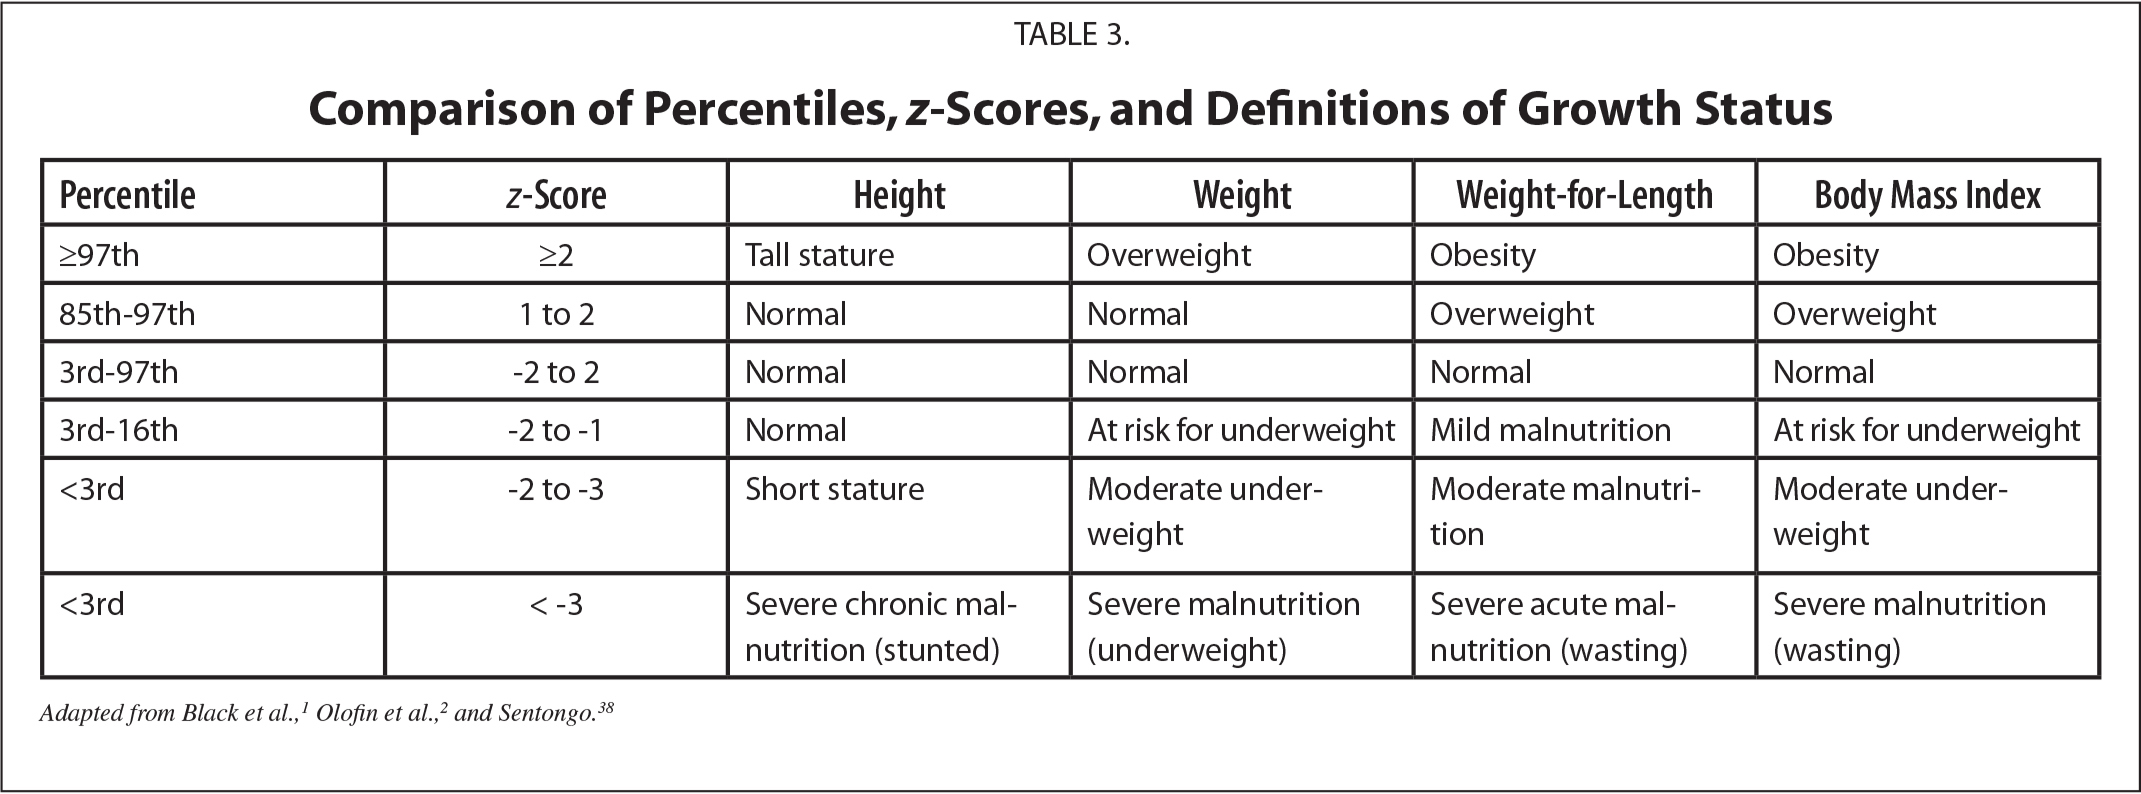 Comparison of Percentiles, z-Scores, and Definitions of Growth Status